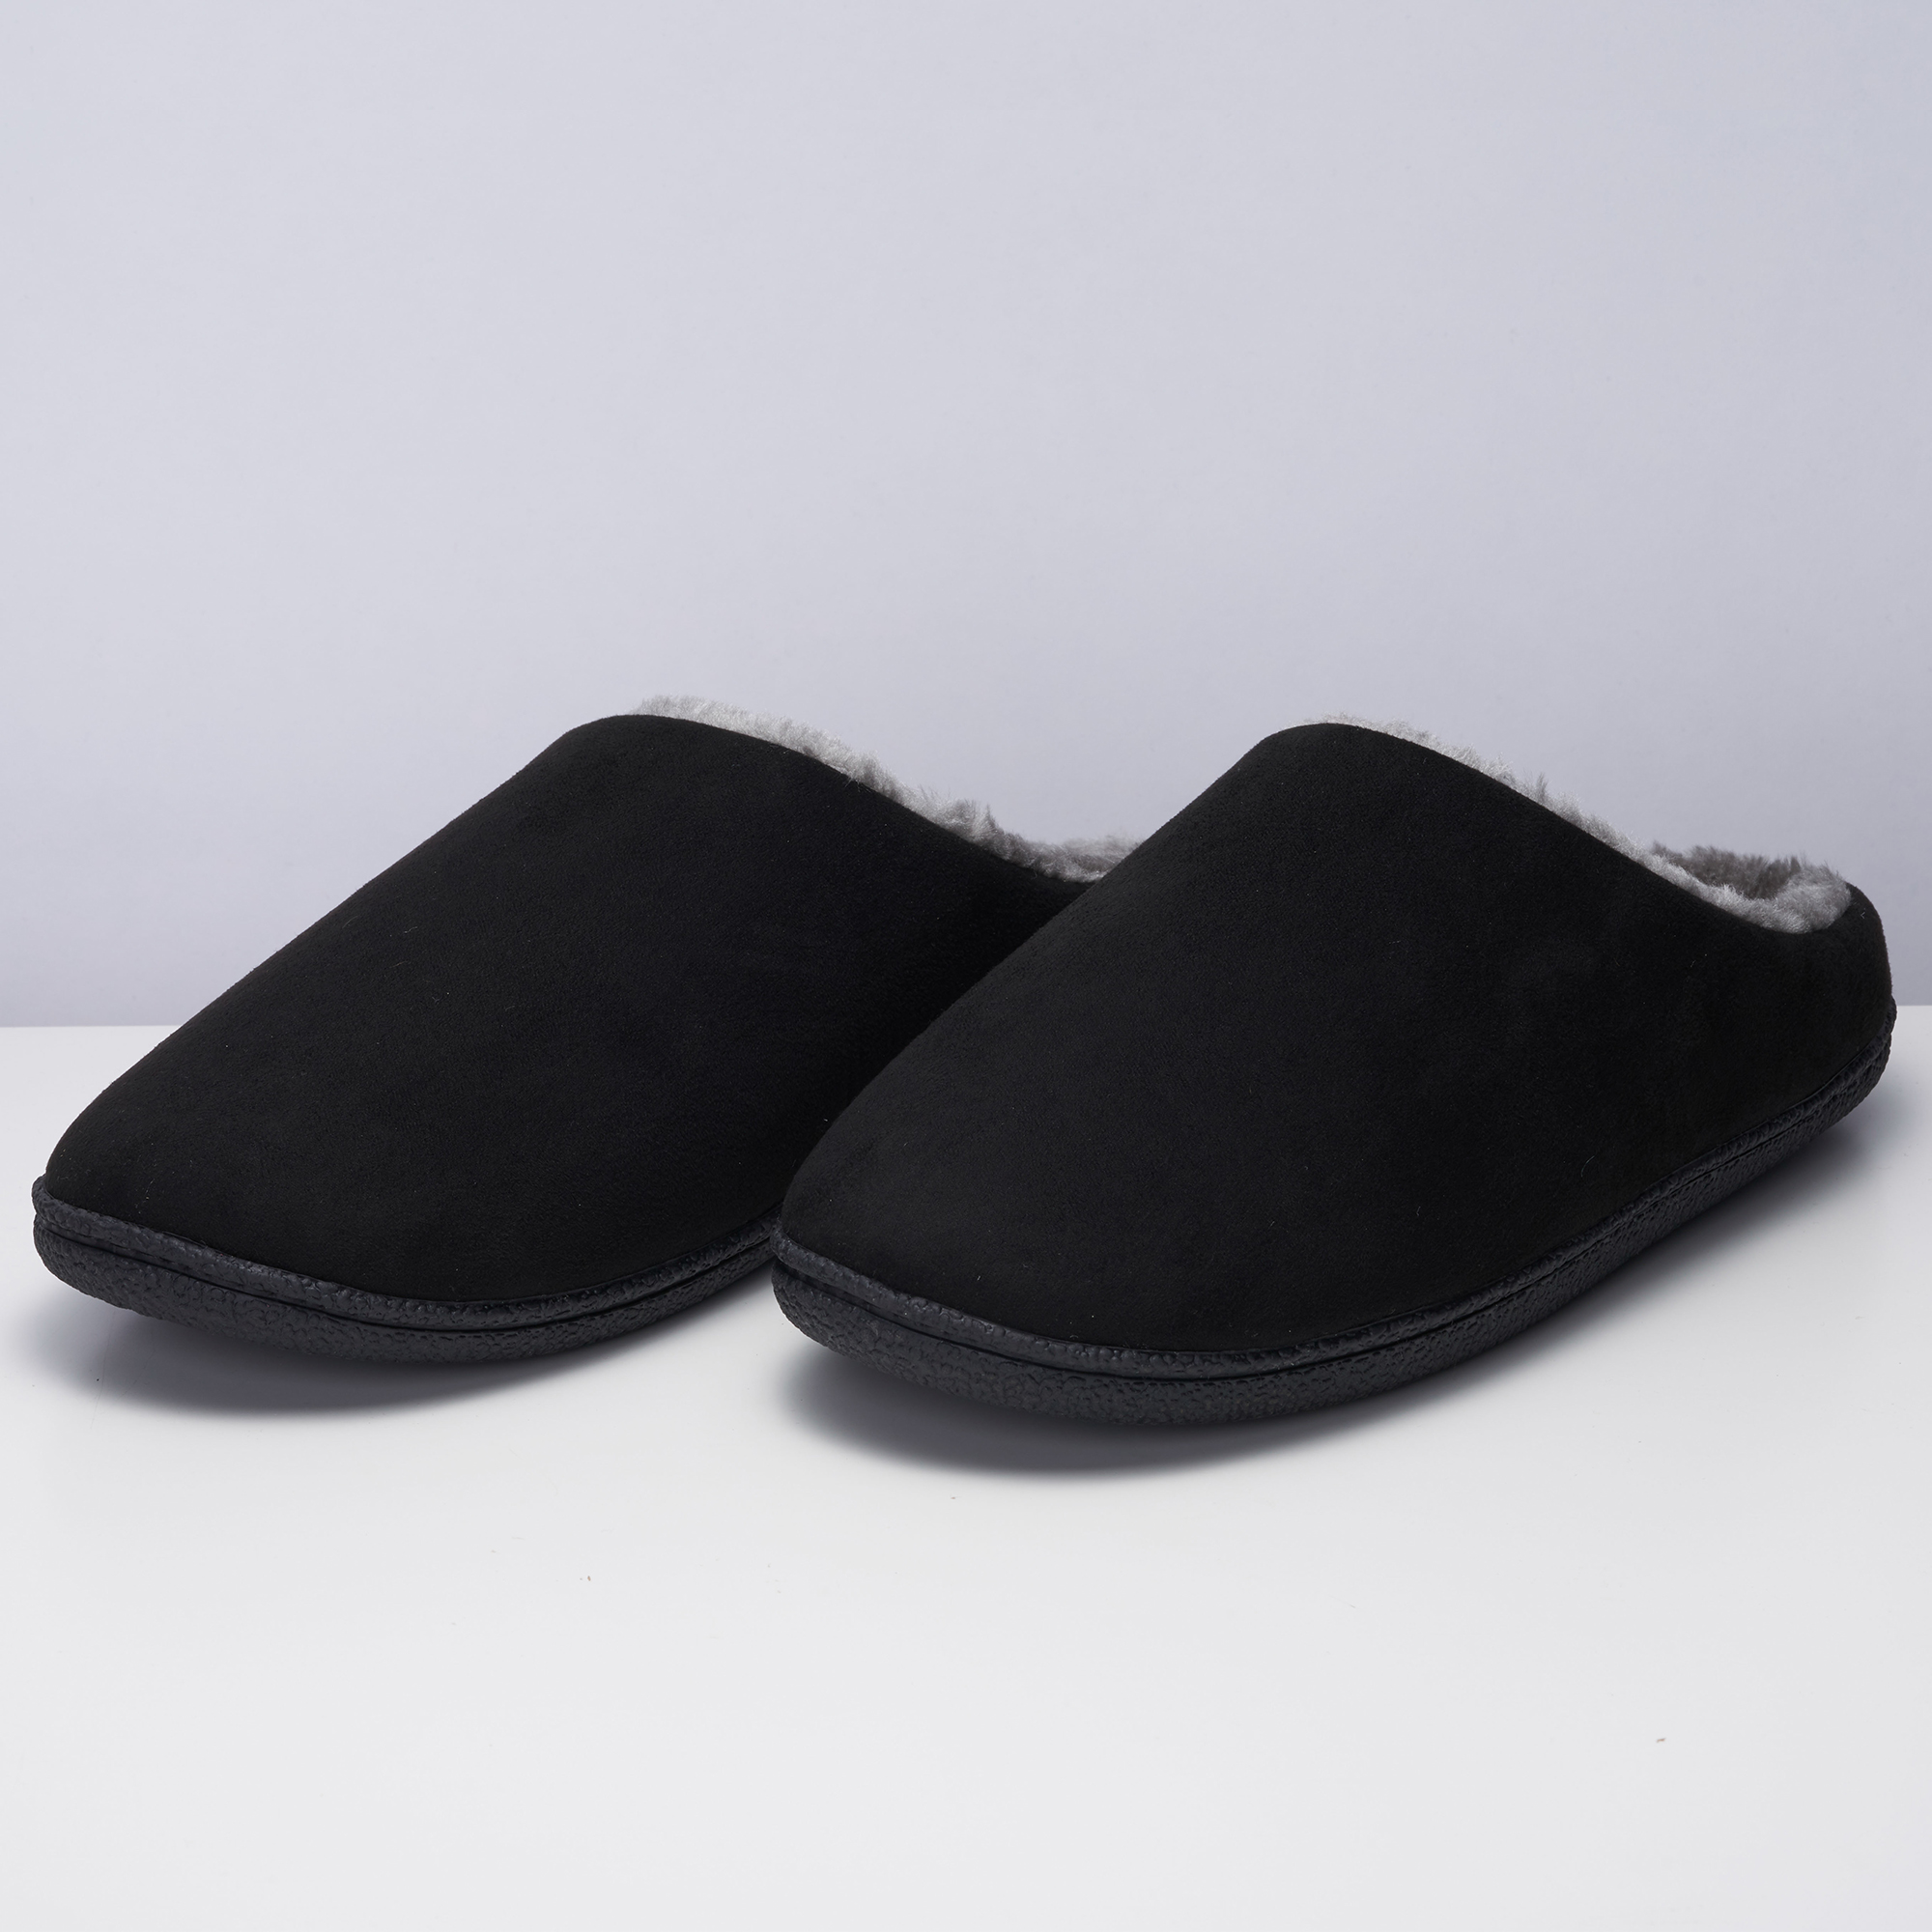 Alpine-Swiss-Mens-Memory-Foam-Clog-Slippers-Indoor-Comfort-Slip-On-House-Shoes thumbnail 17